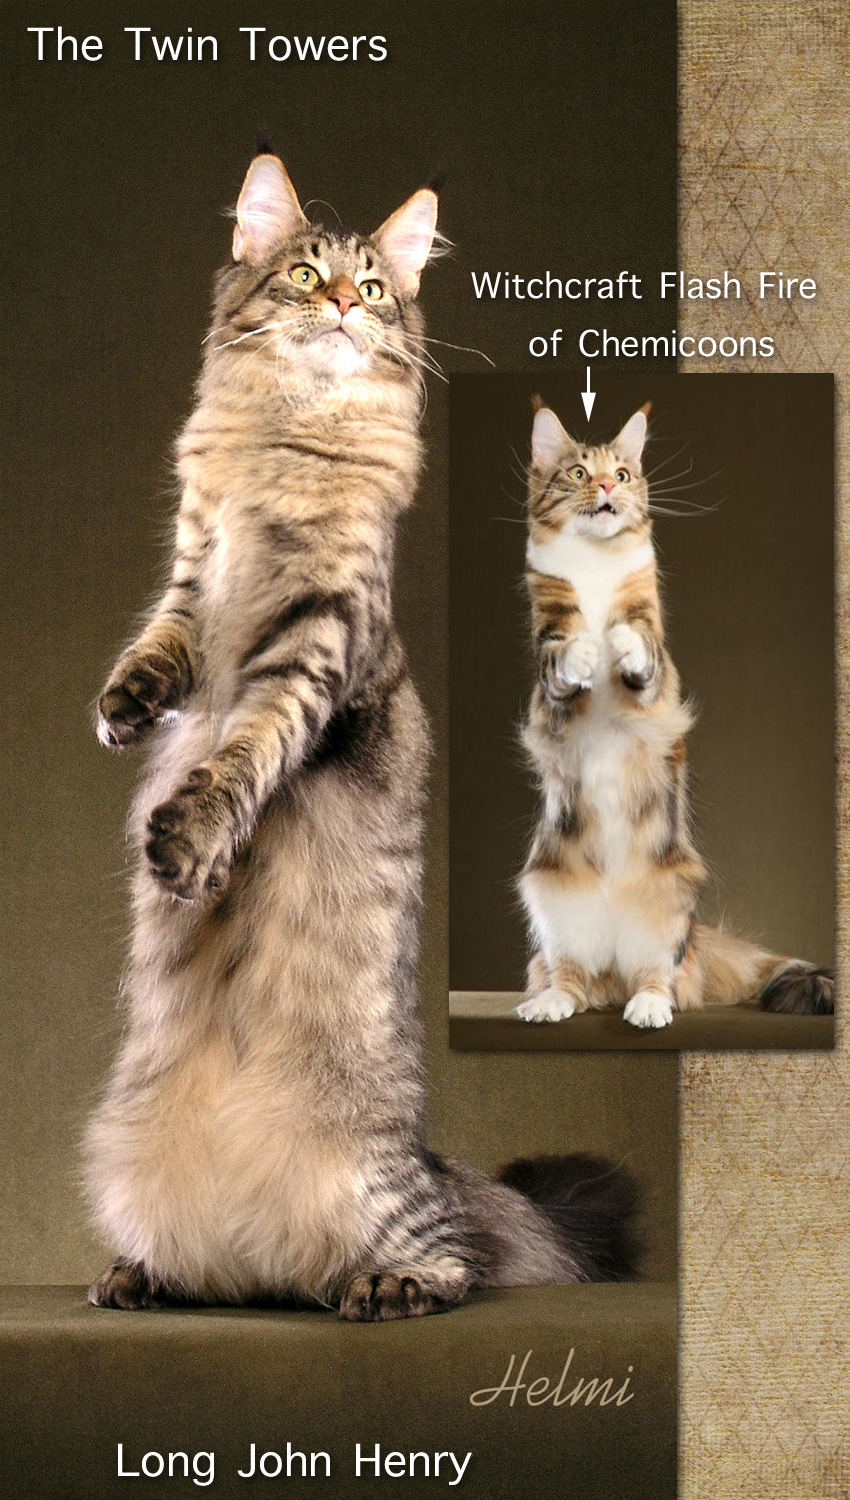 Long and tall Maine Coon cats